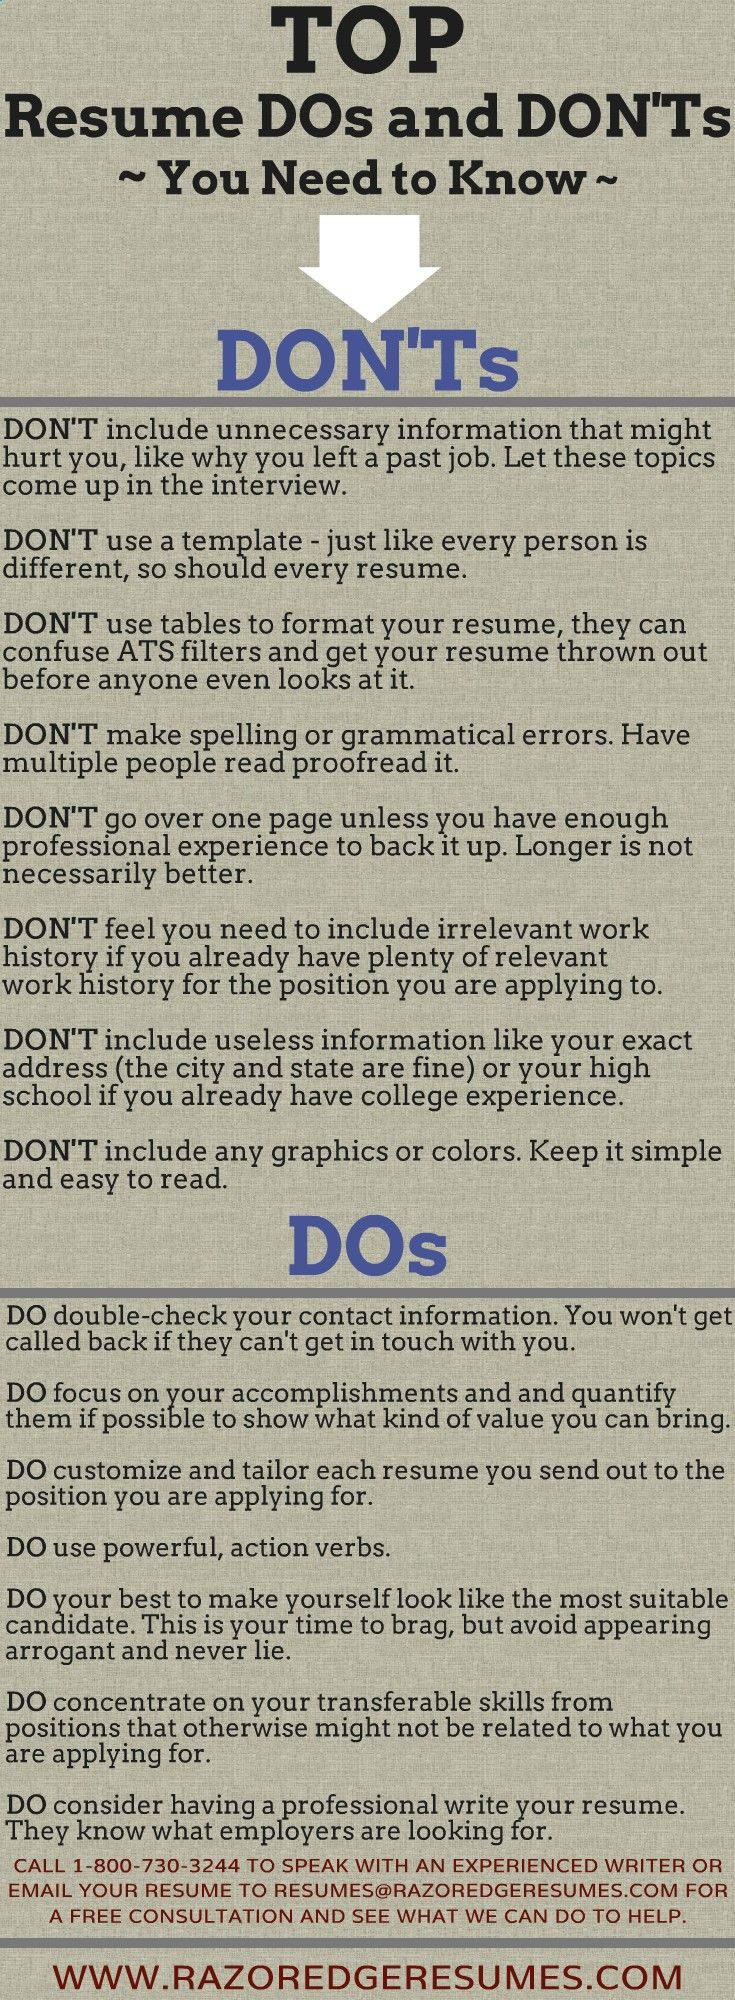 Pin by JSN on Literatura | Pinterest | Cover letter resume, Adulting ...